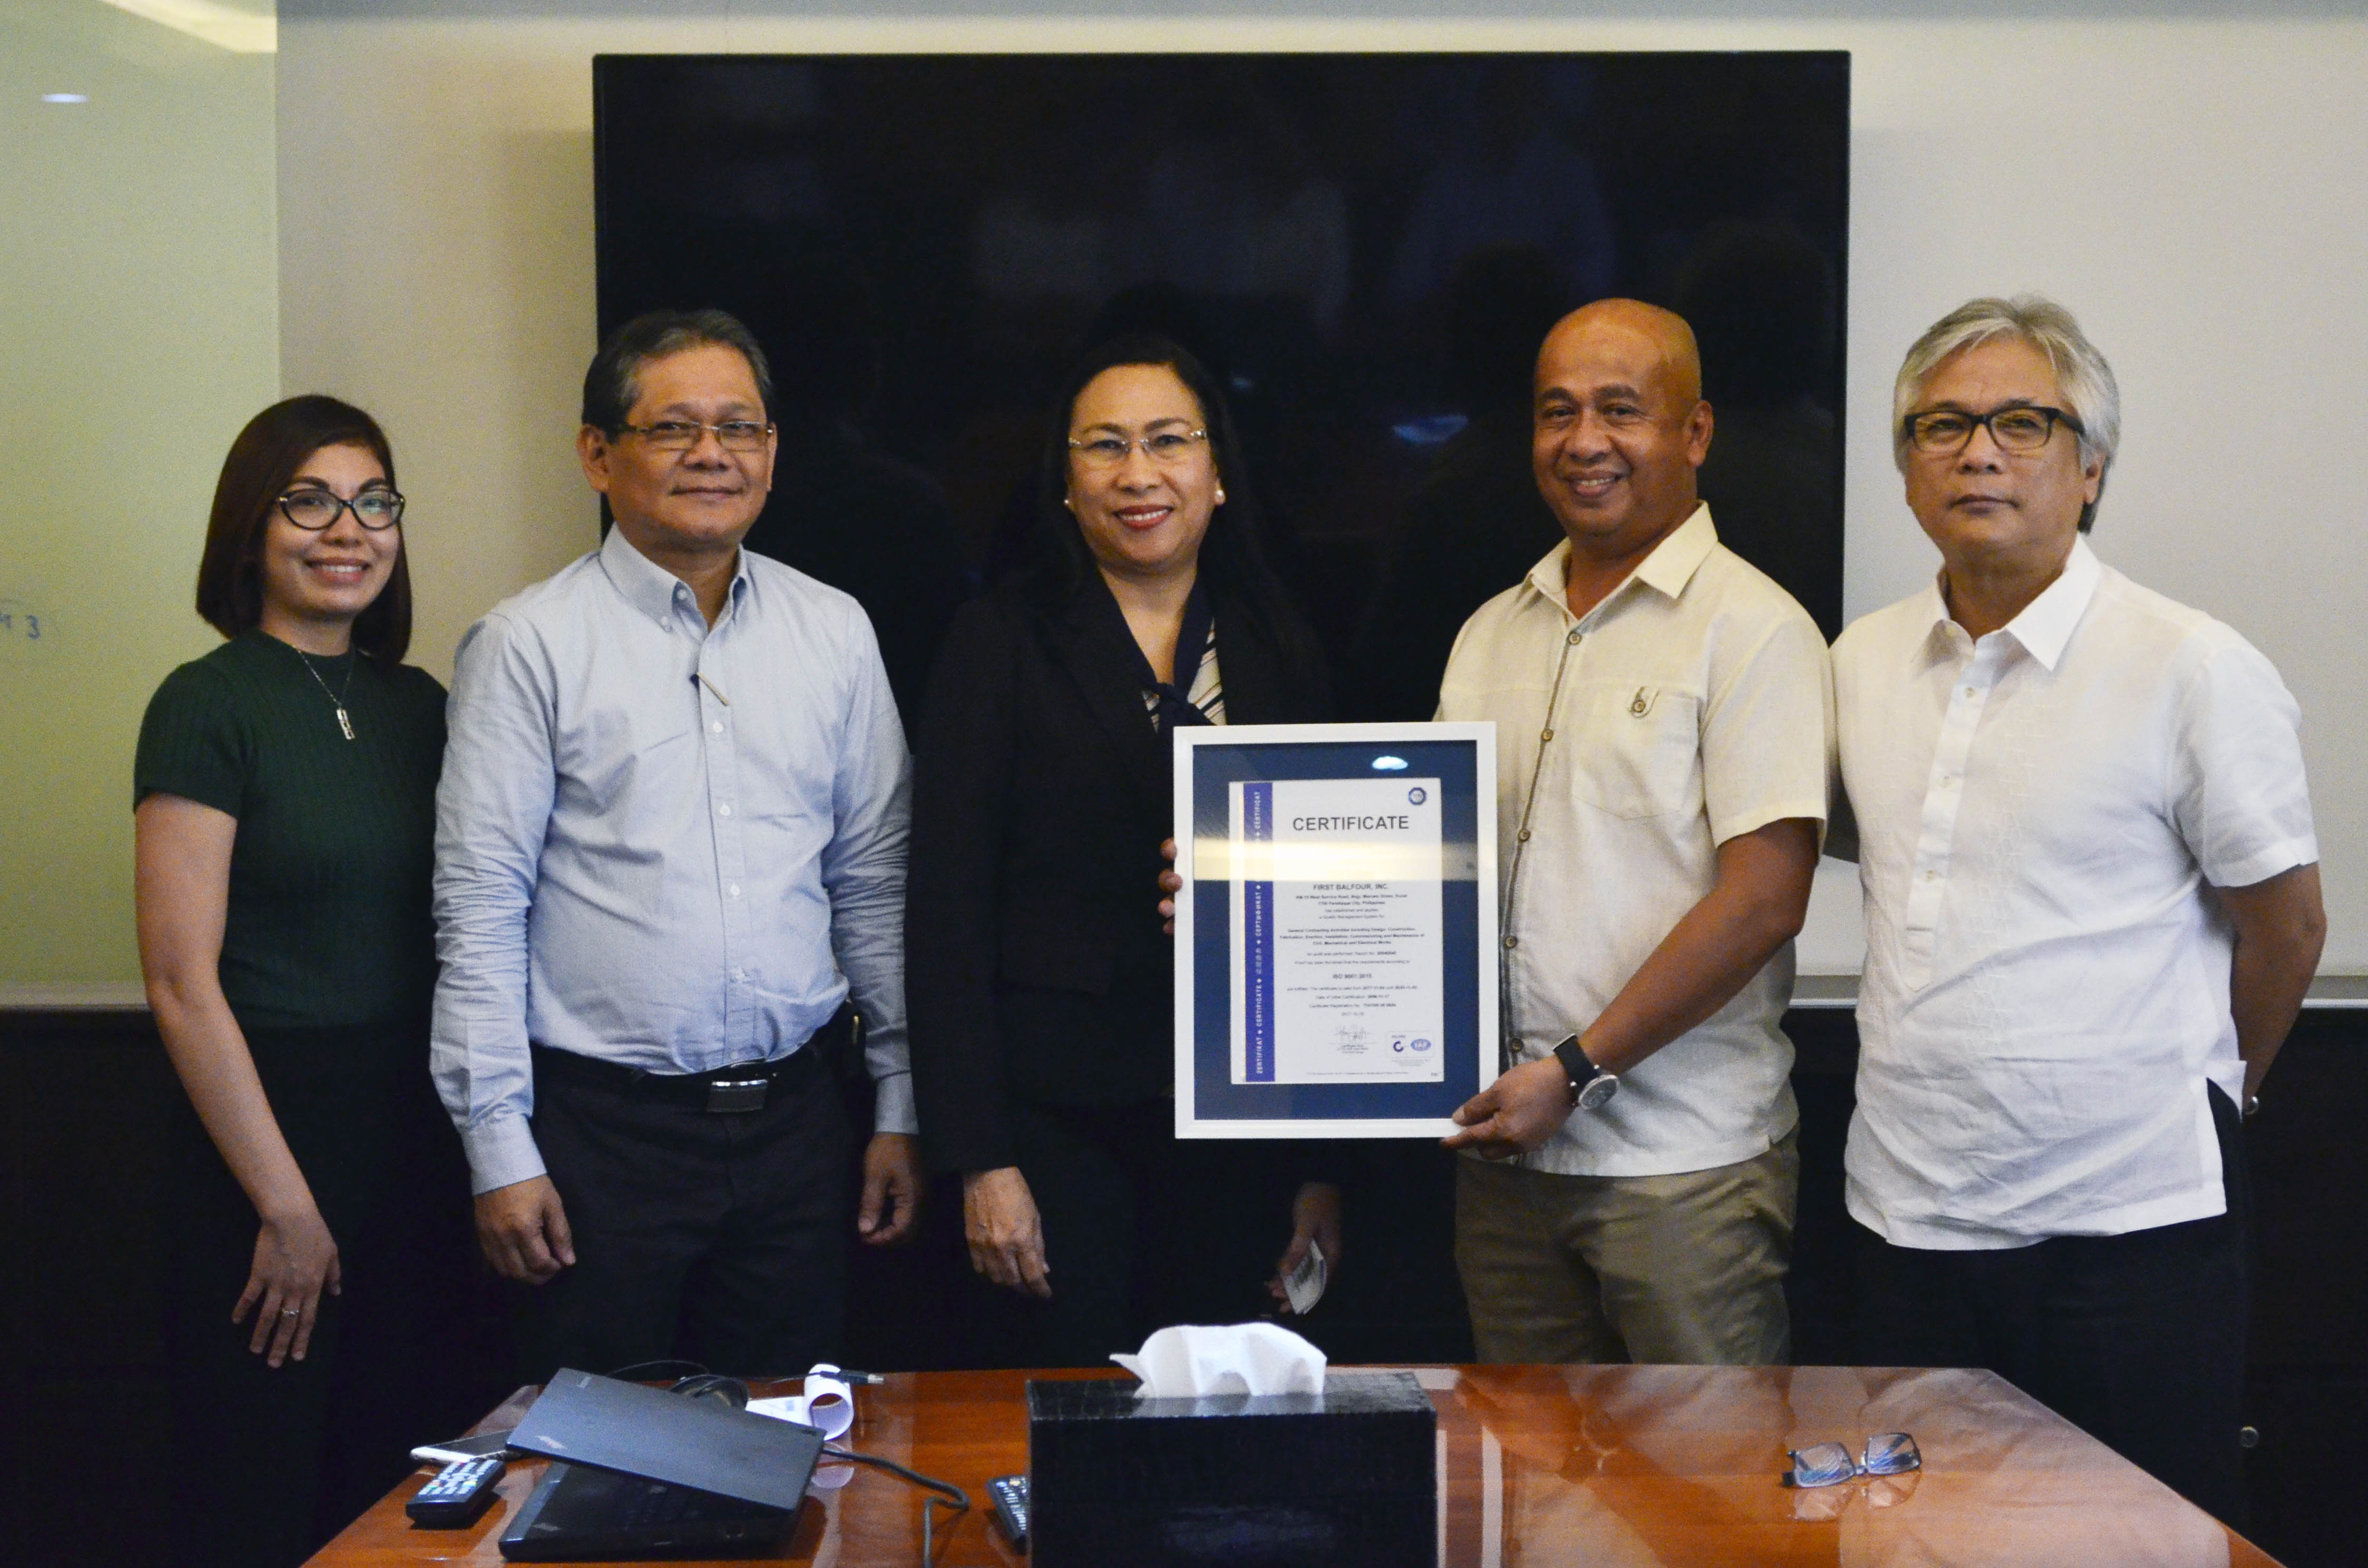 From right: First Balfour president and COO Anthony Fernandez, Corporate Quality head Jose Lagdan Jr., TUV SUD lead auditor Eunice Sol Diamante, First Balfour EVP Rey Villar and TUV SUD account executive Ednalyn Olivia